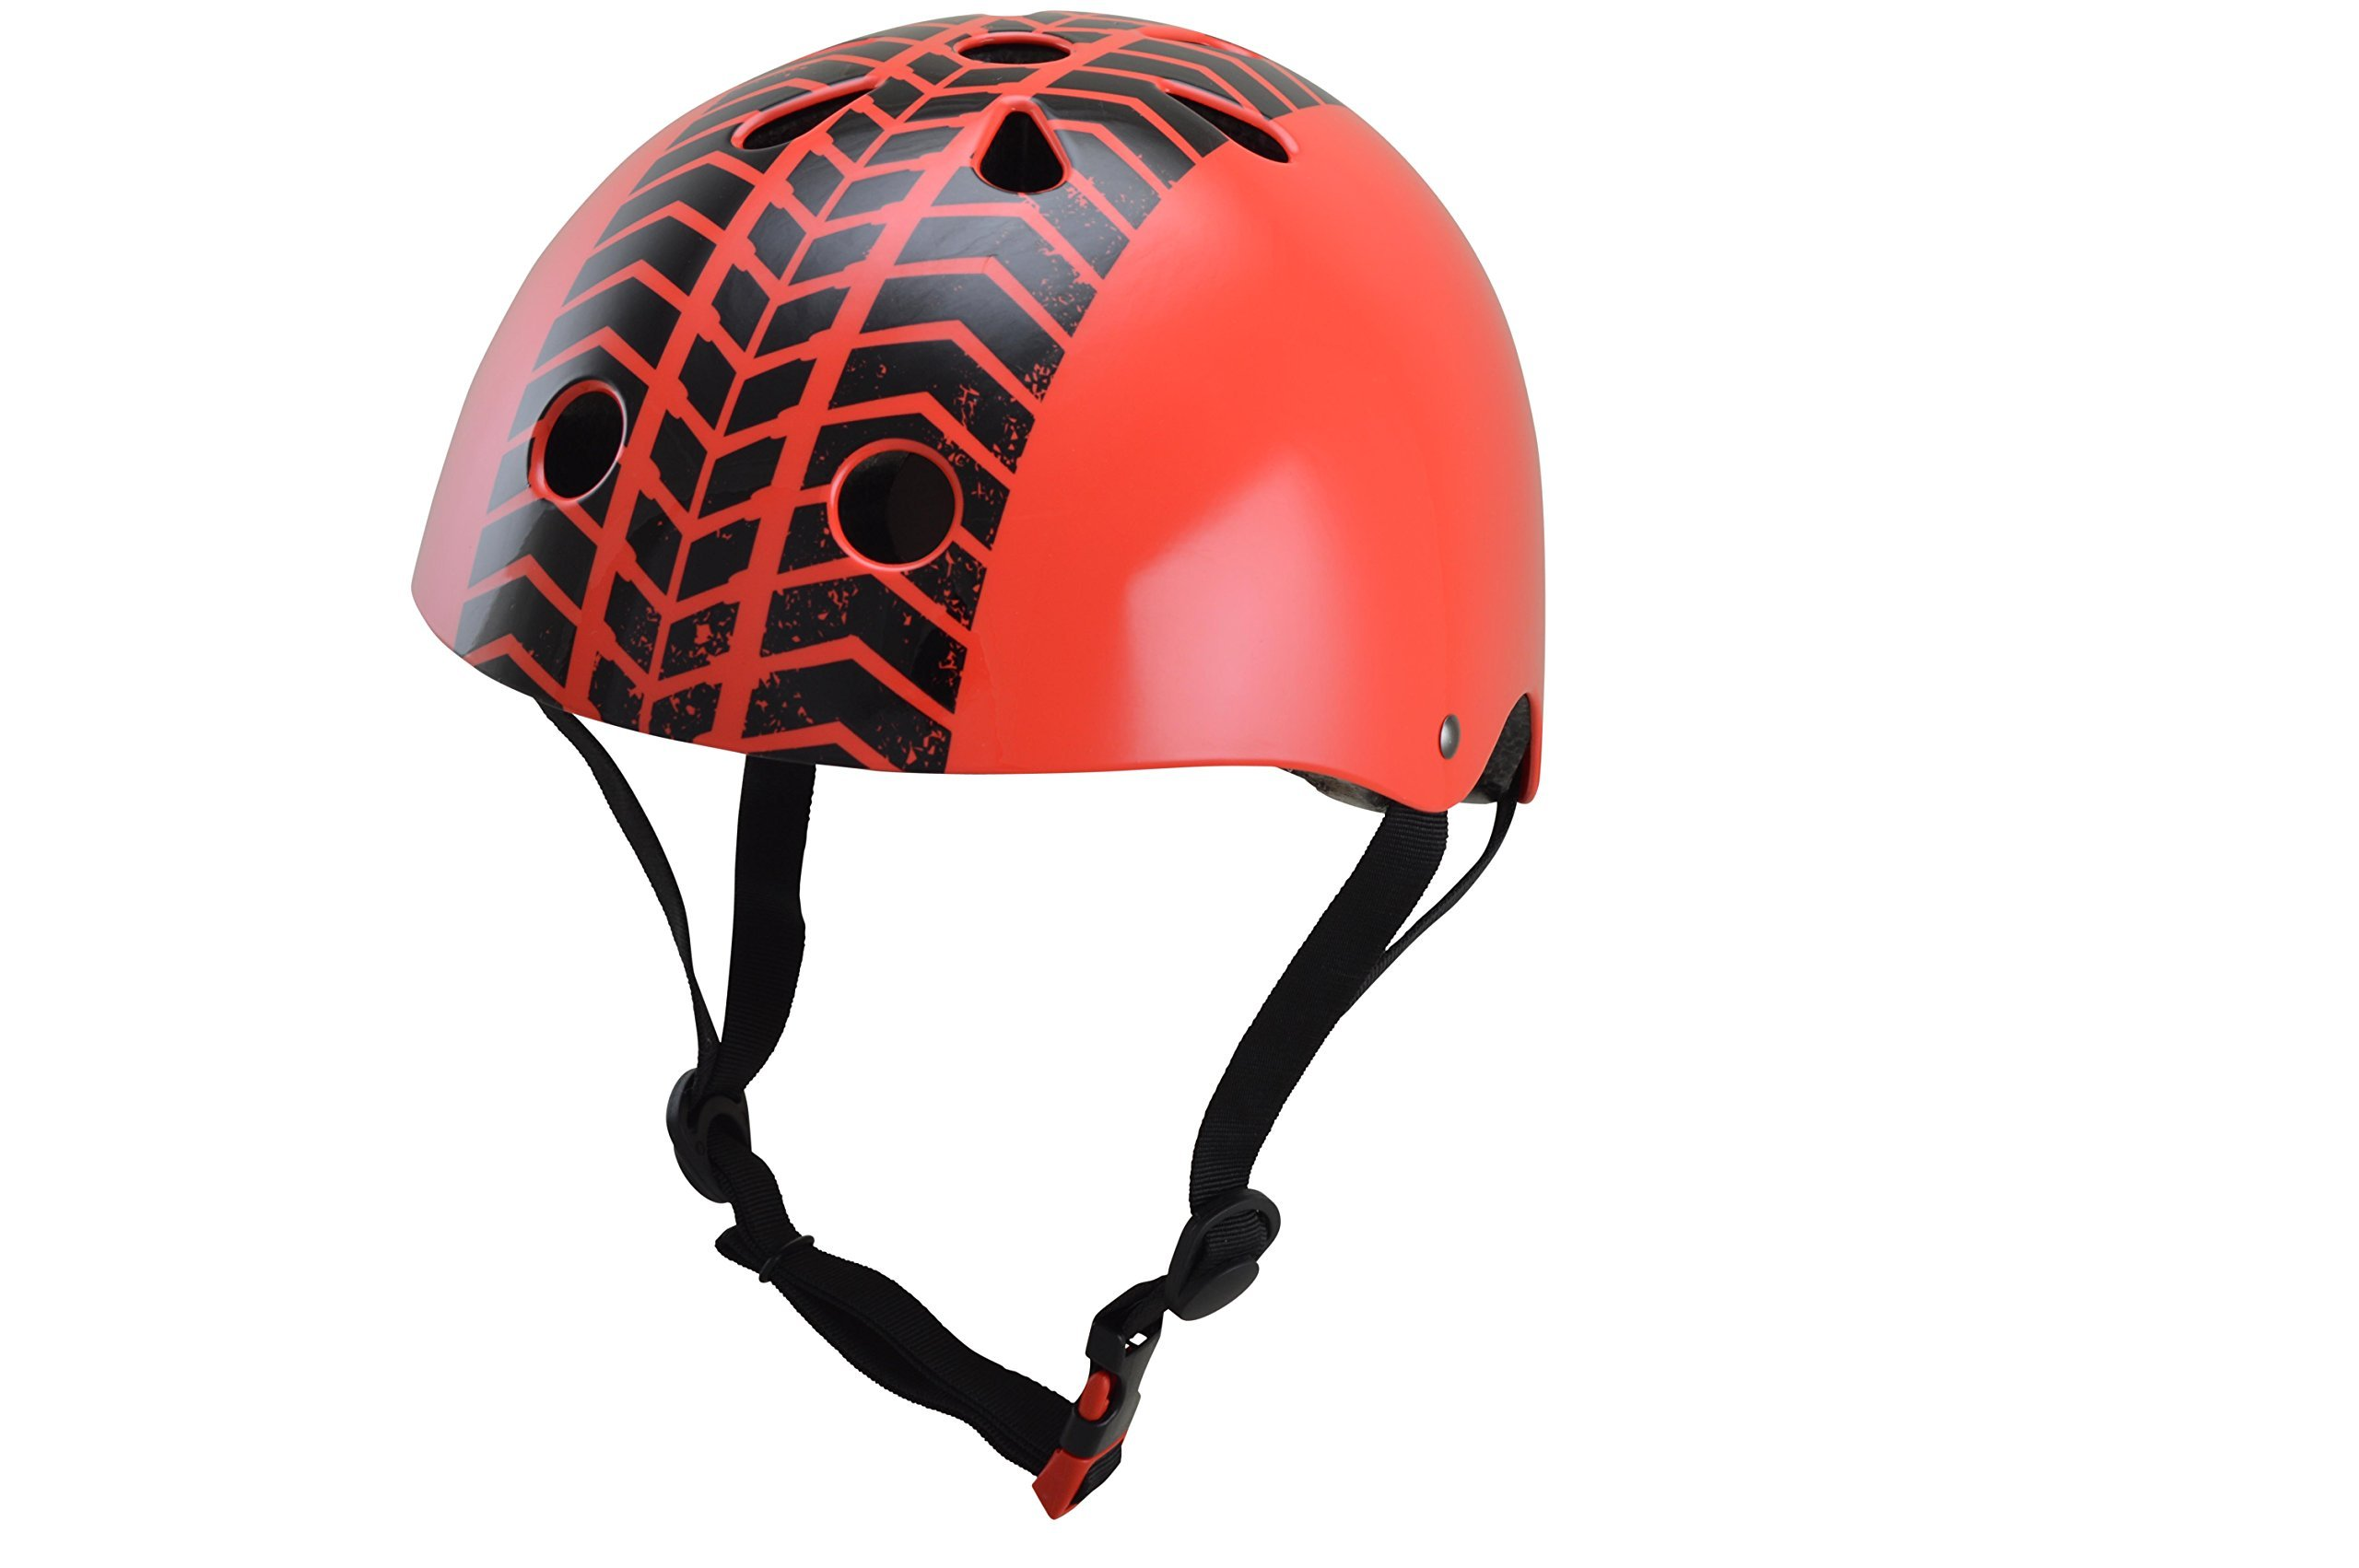 Kiddimoto Kids Helmet - Red Tyre (Small 2-5 years)